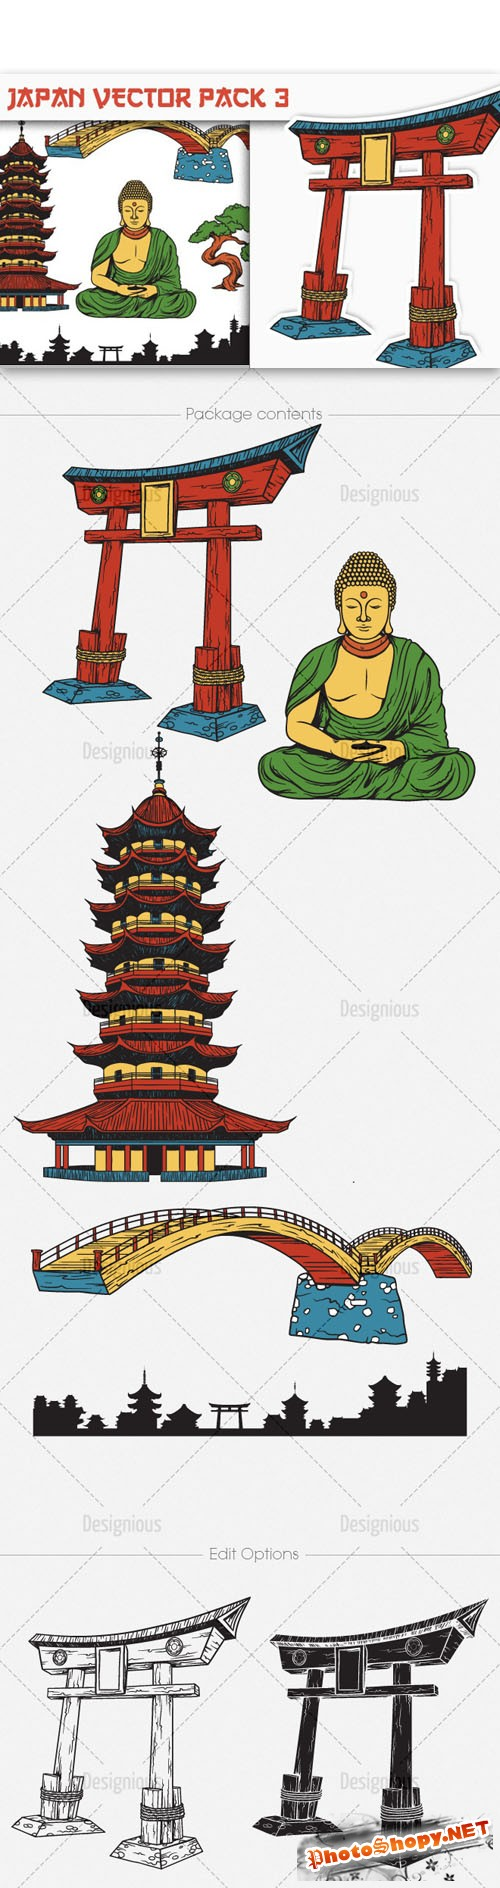 Japan Photoshop Vector Pack 3